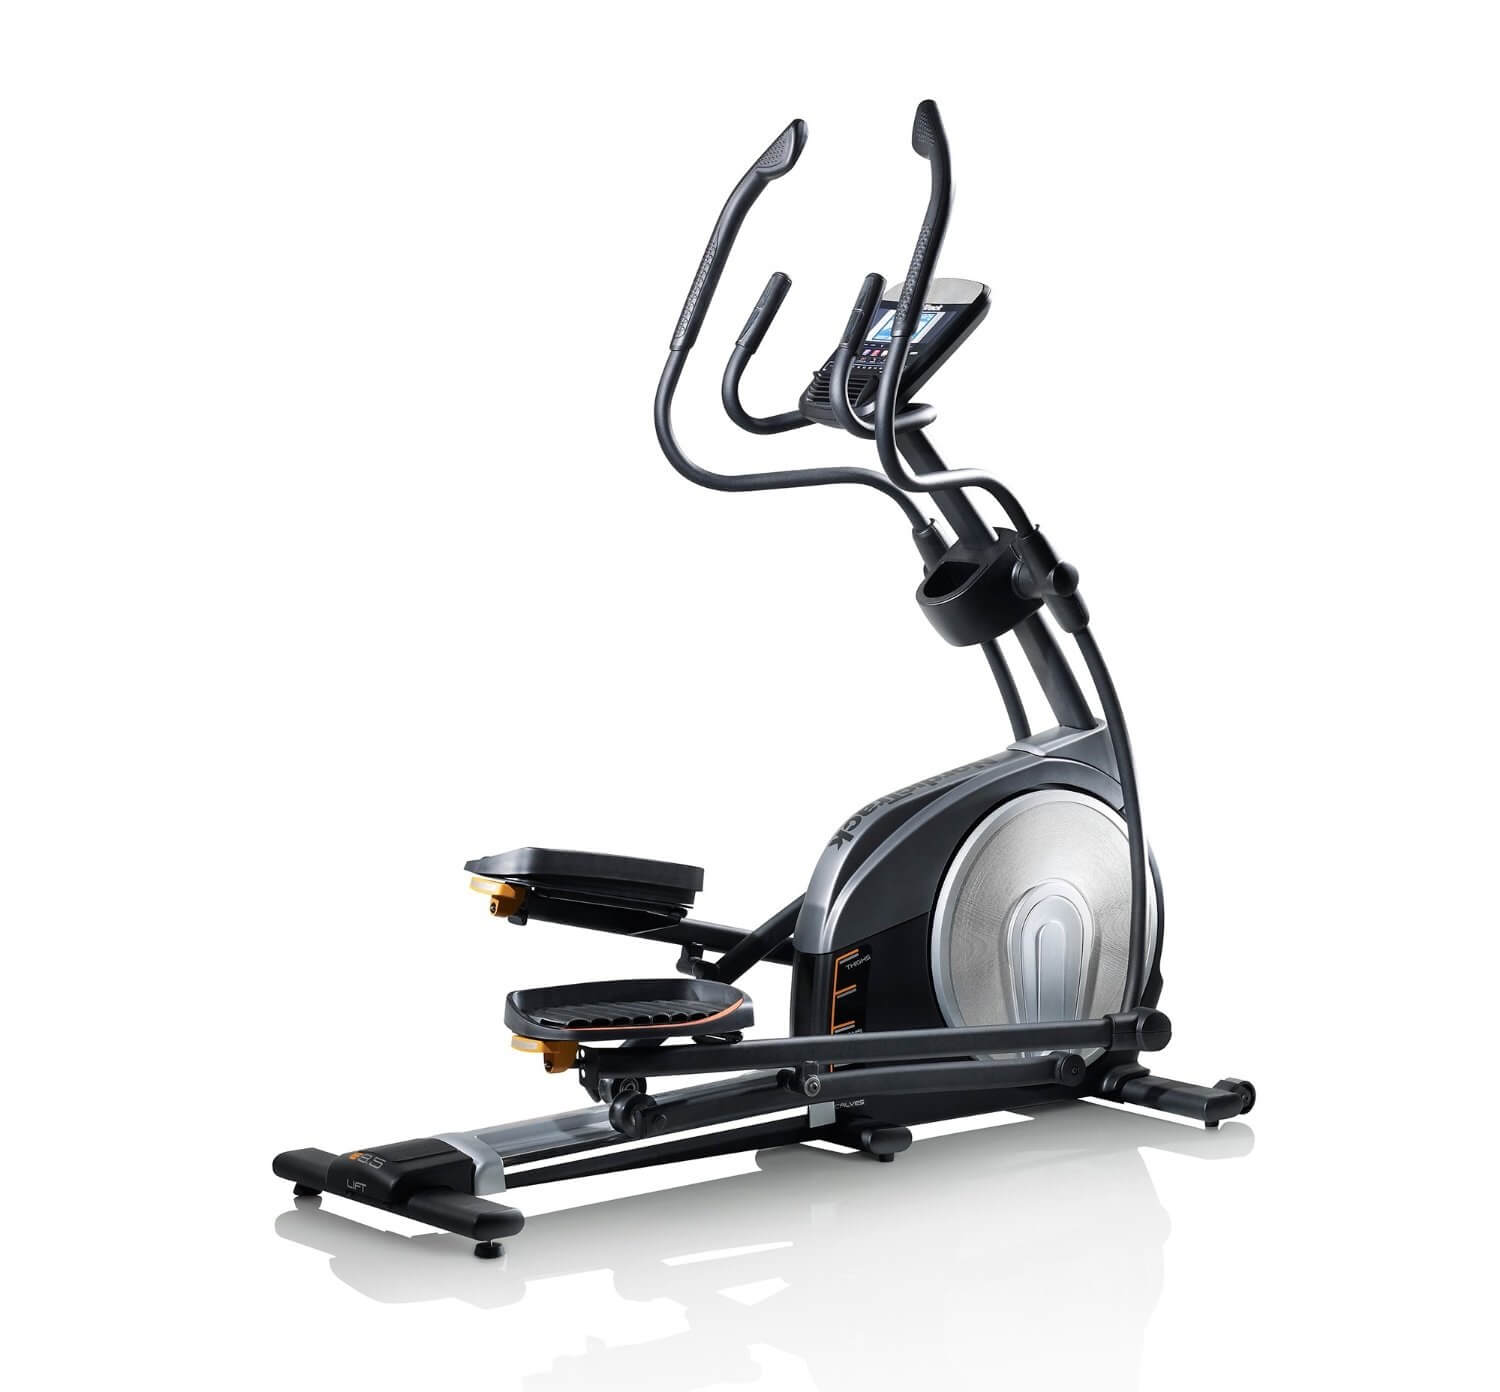 Elliptical Machine Buying Guide - Find the Right Cross …